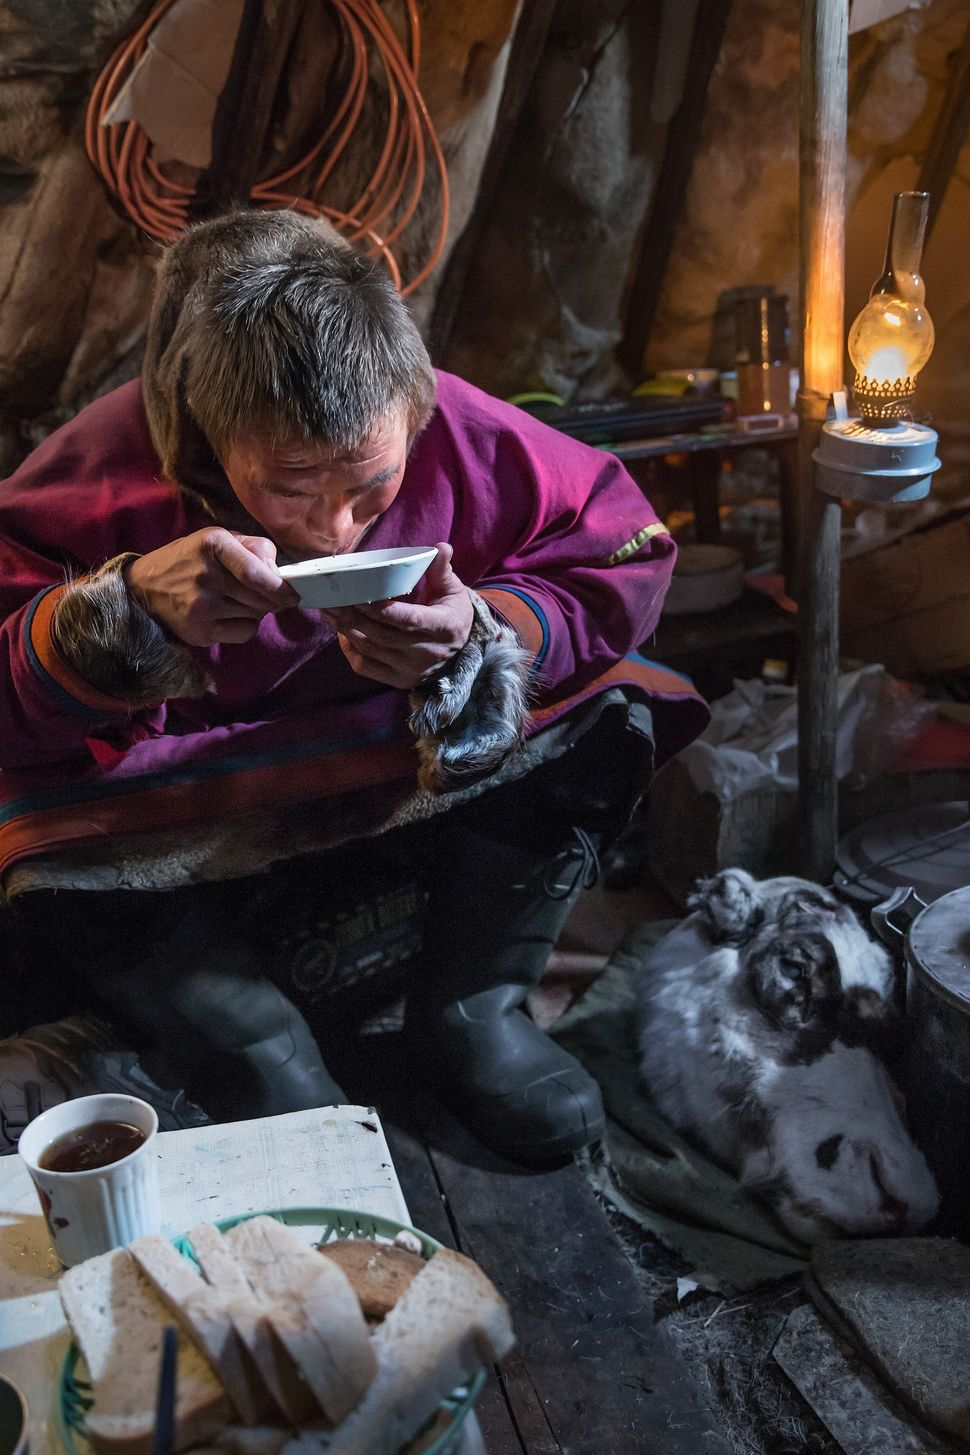 A reindeer herder eats his meal at a nomad camp, 150 km from the town of Salekhard, Yamalo-Nenets Autonomous Okrug, in Russia